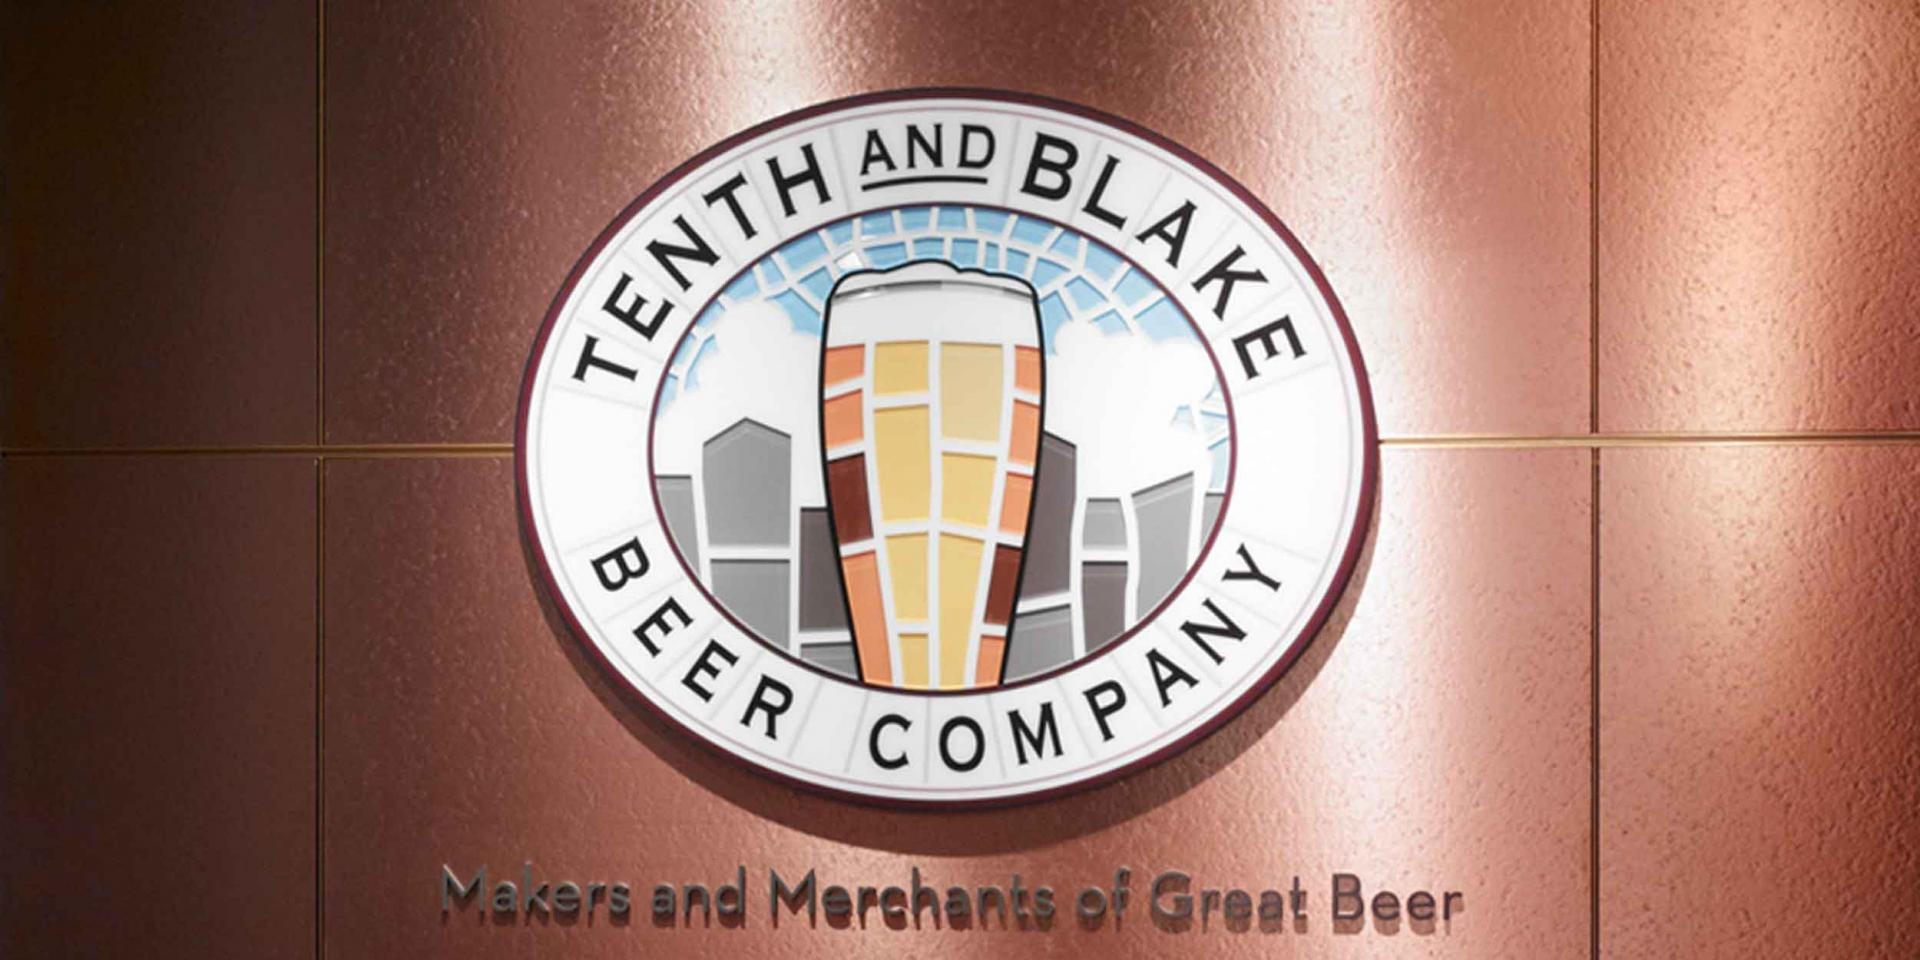 Tenth and Blake Merchants of Great Beer